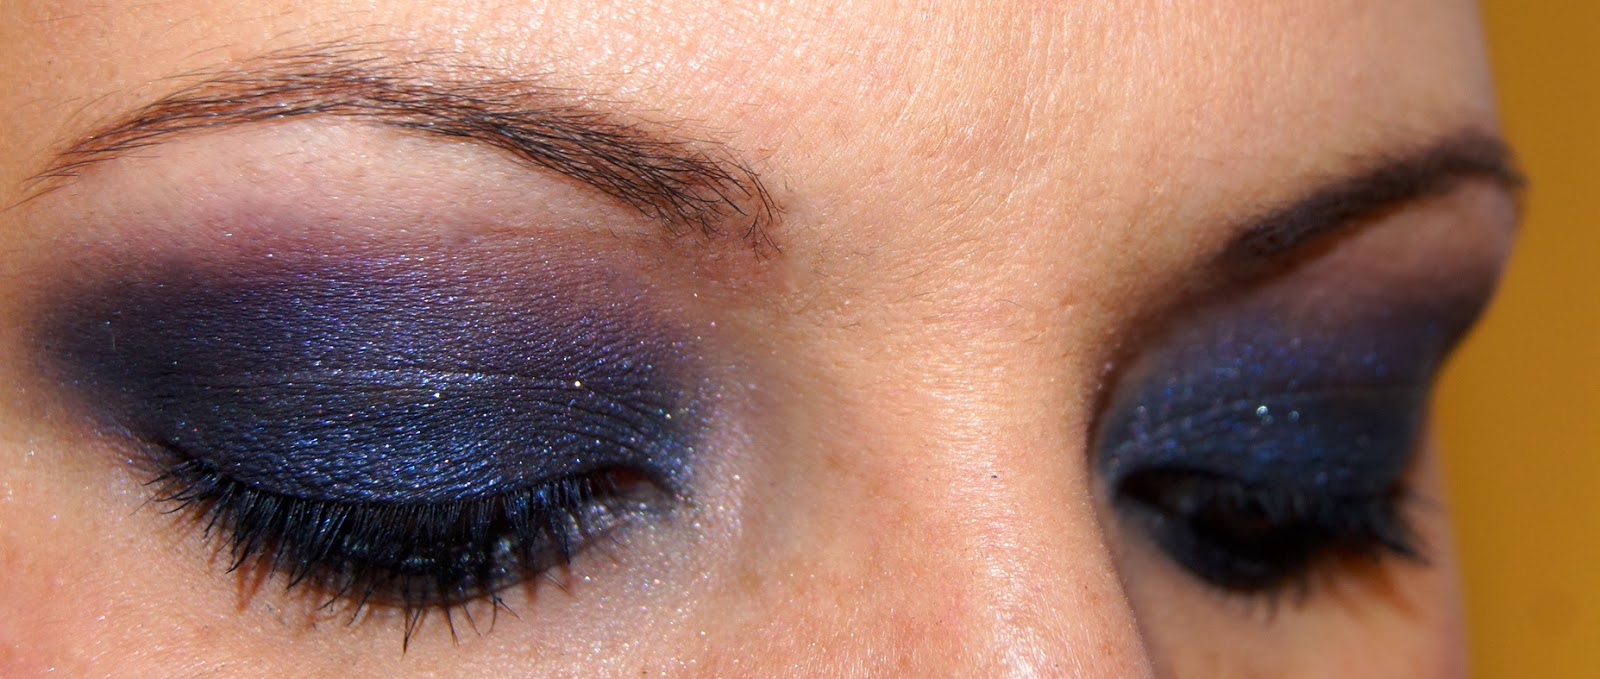 Chou makeup maquillage du jour smoky eyes bleu violet - Maquillage smoky eyes ...